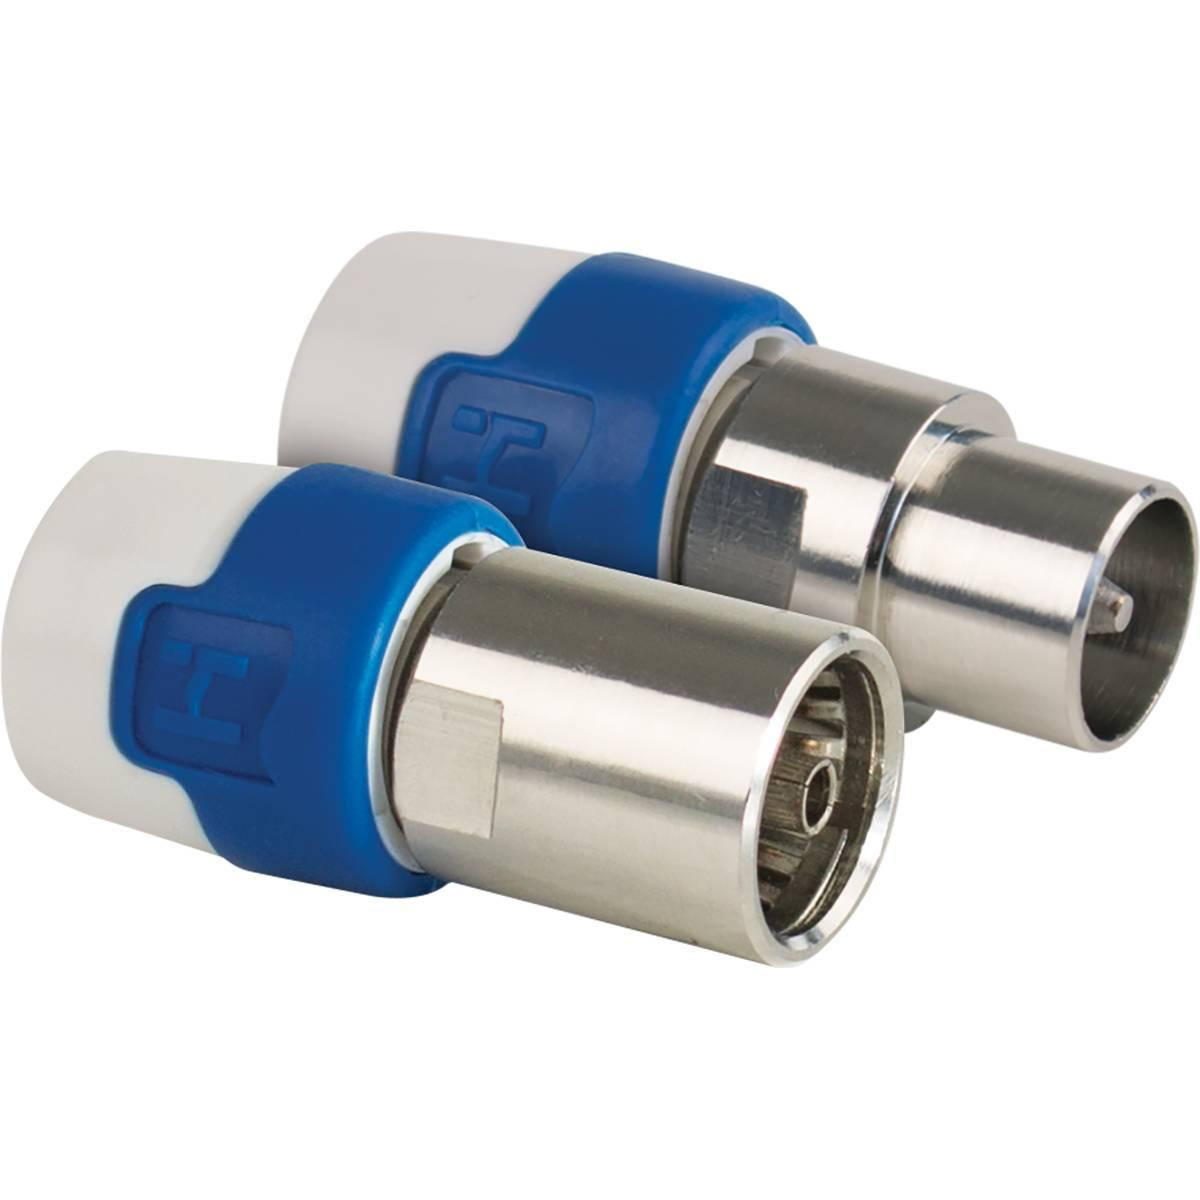 Hirschmann IEC connector